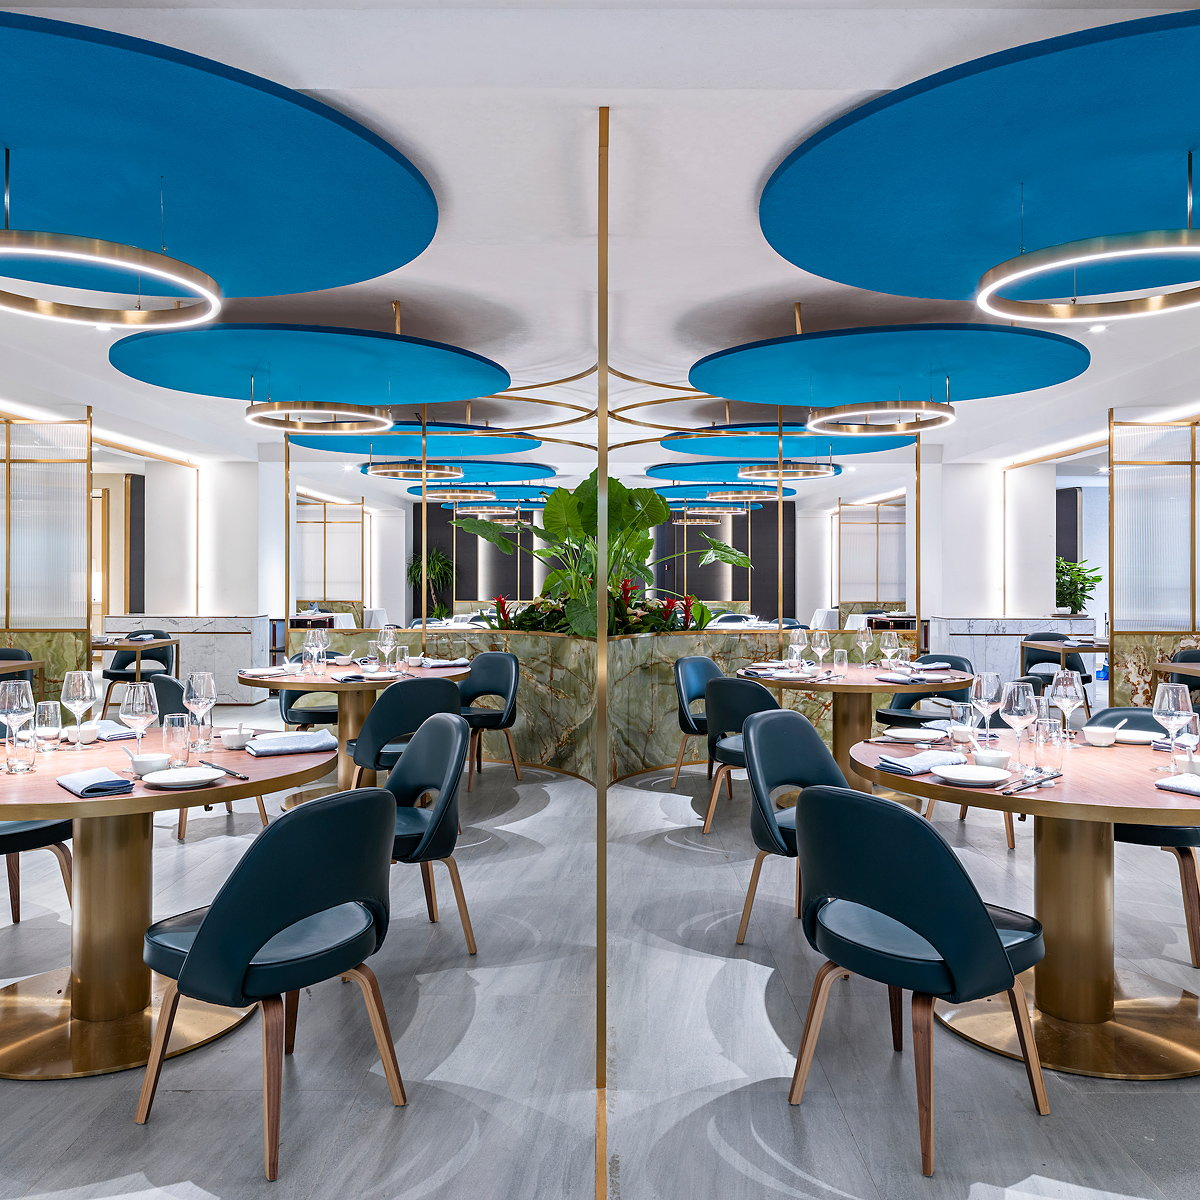 Sybarite Designs Award-winning Restaurant Beijing Kitchen at SKP Xi'an